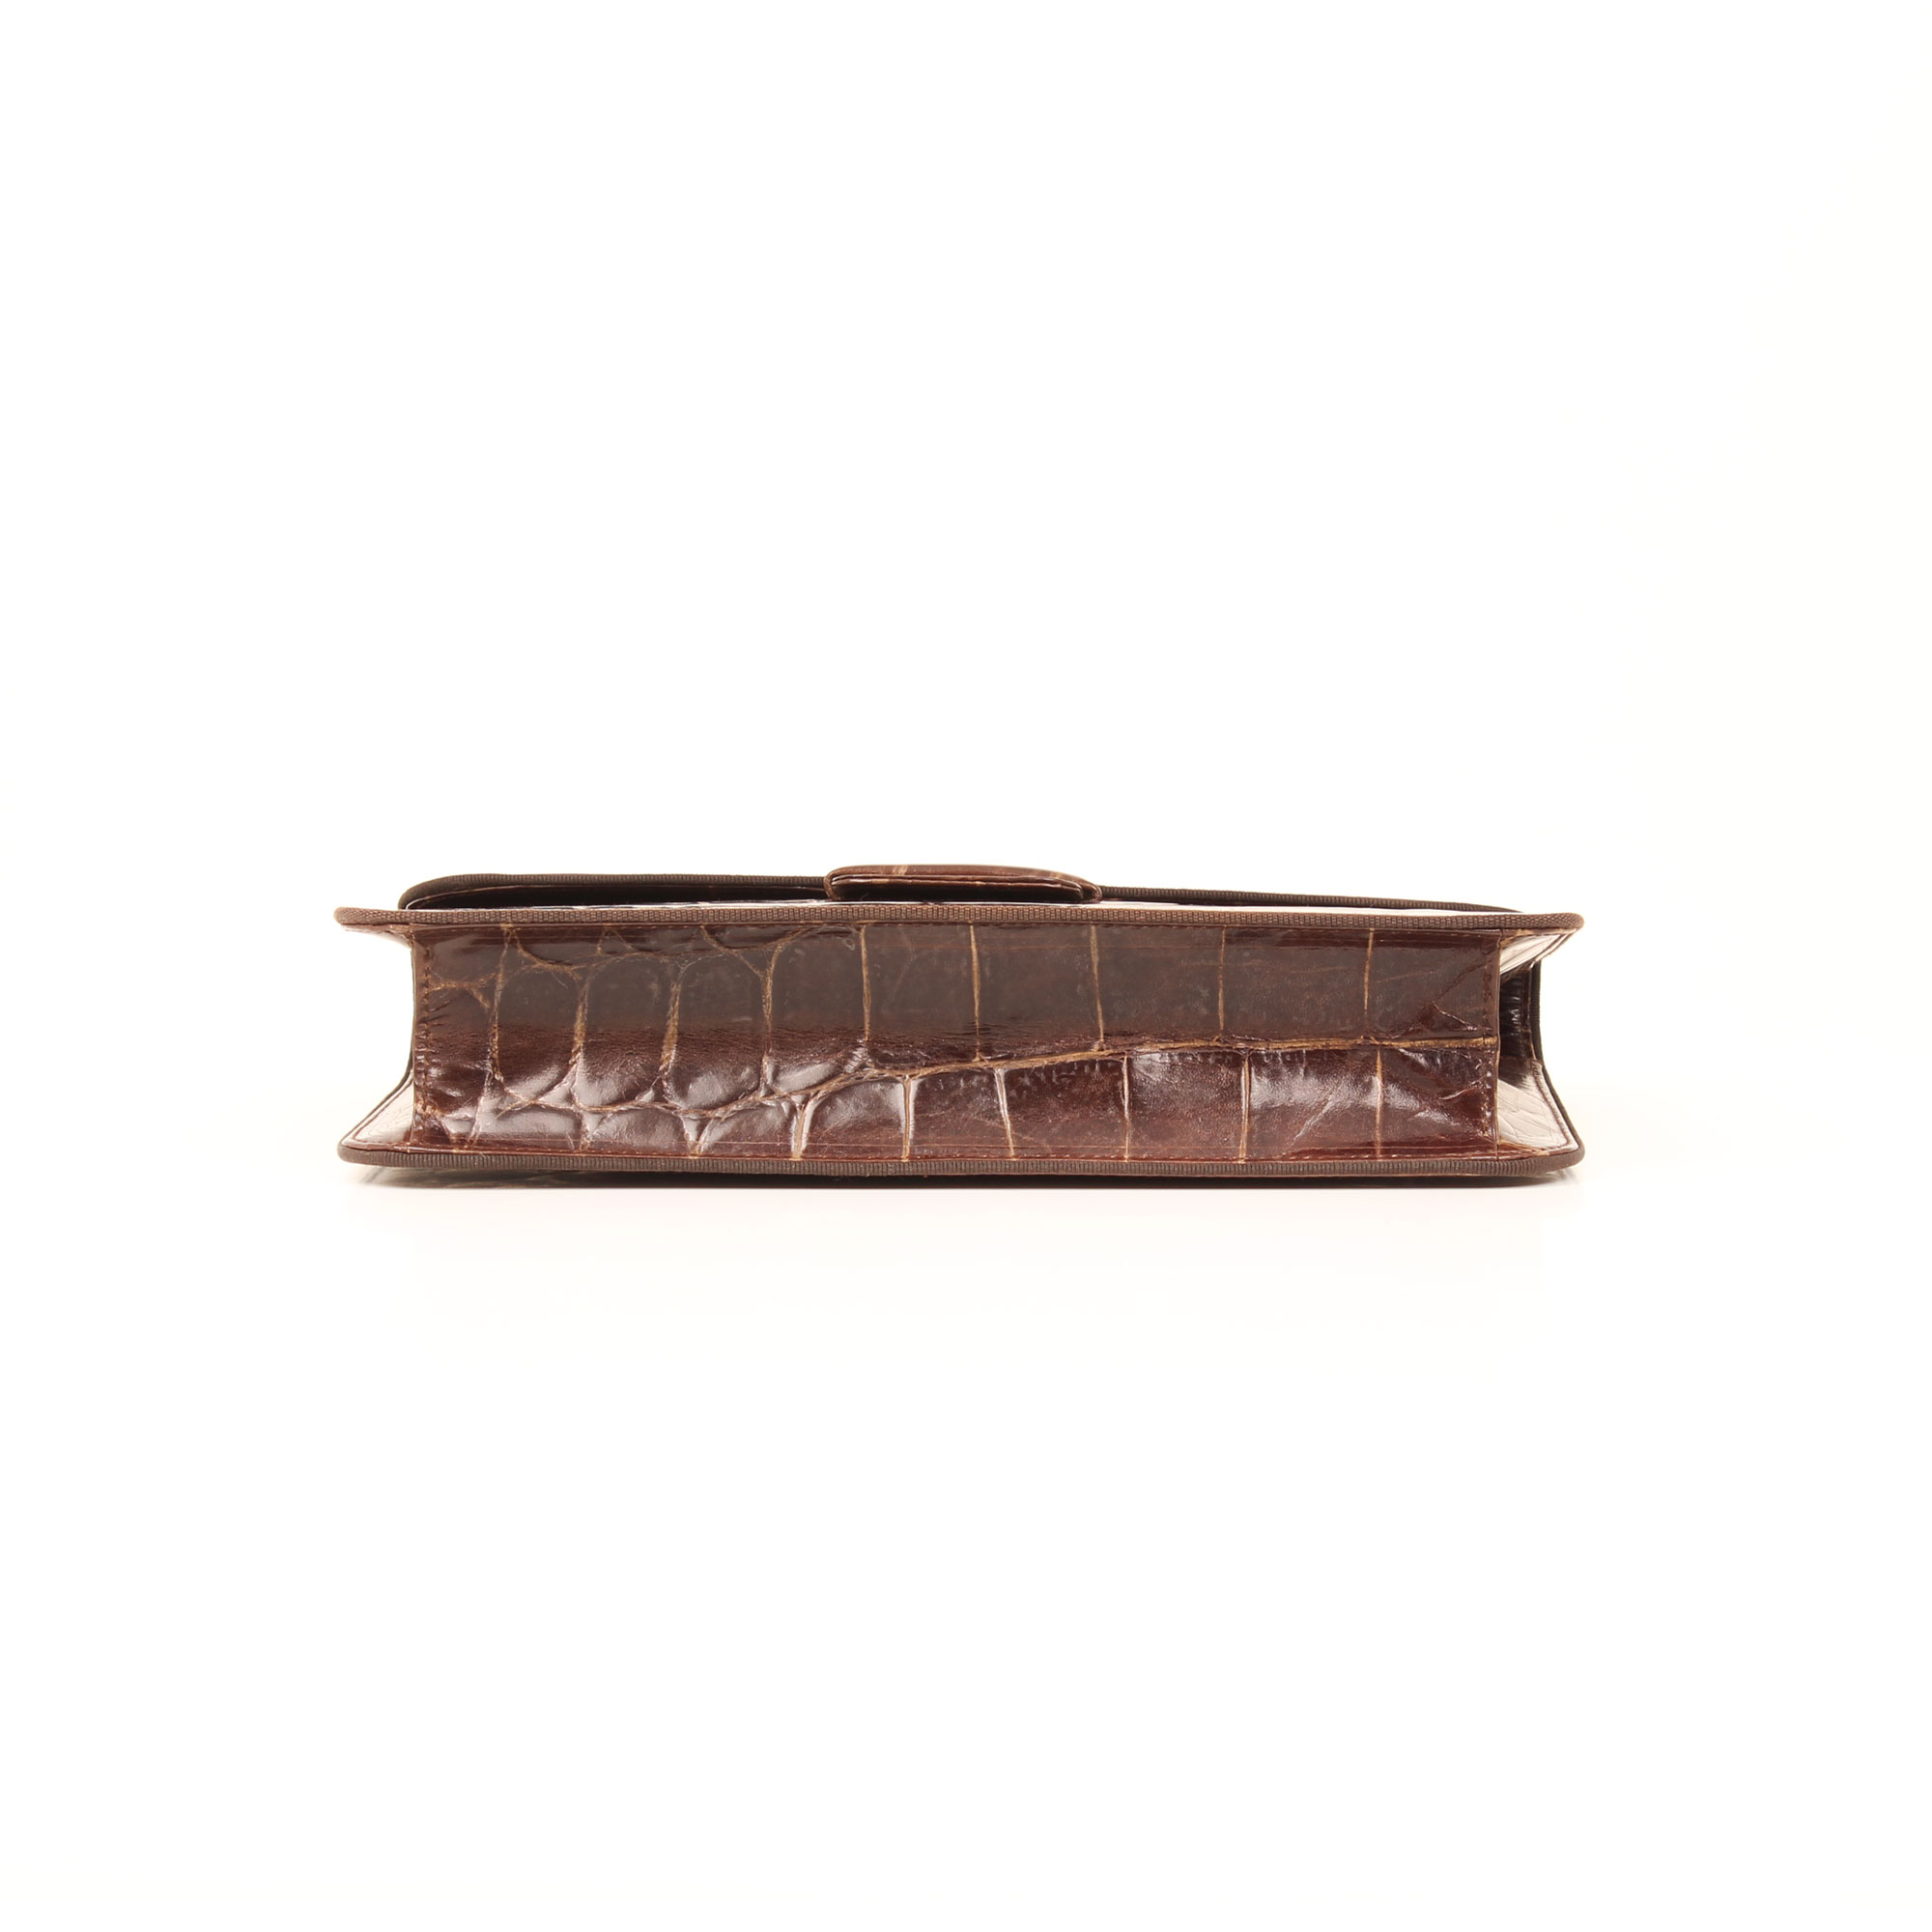 Imagen de la base del armani clutch alligator marron